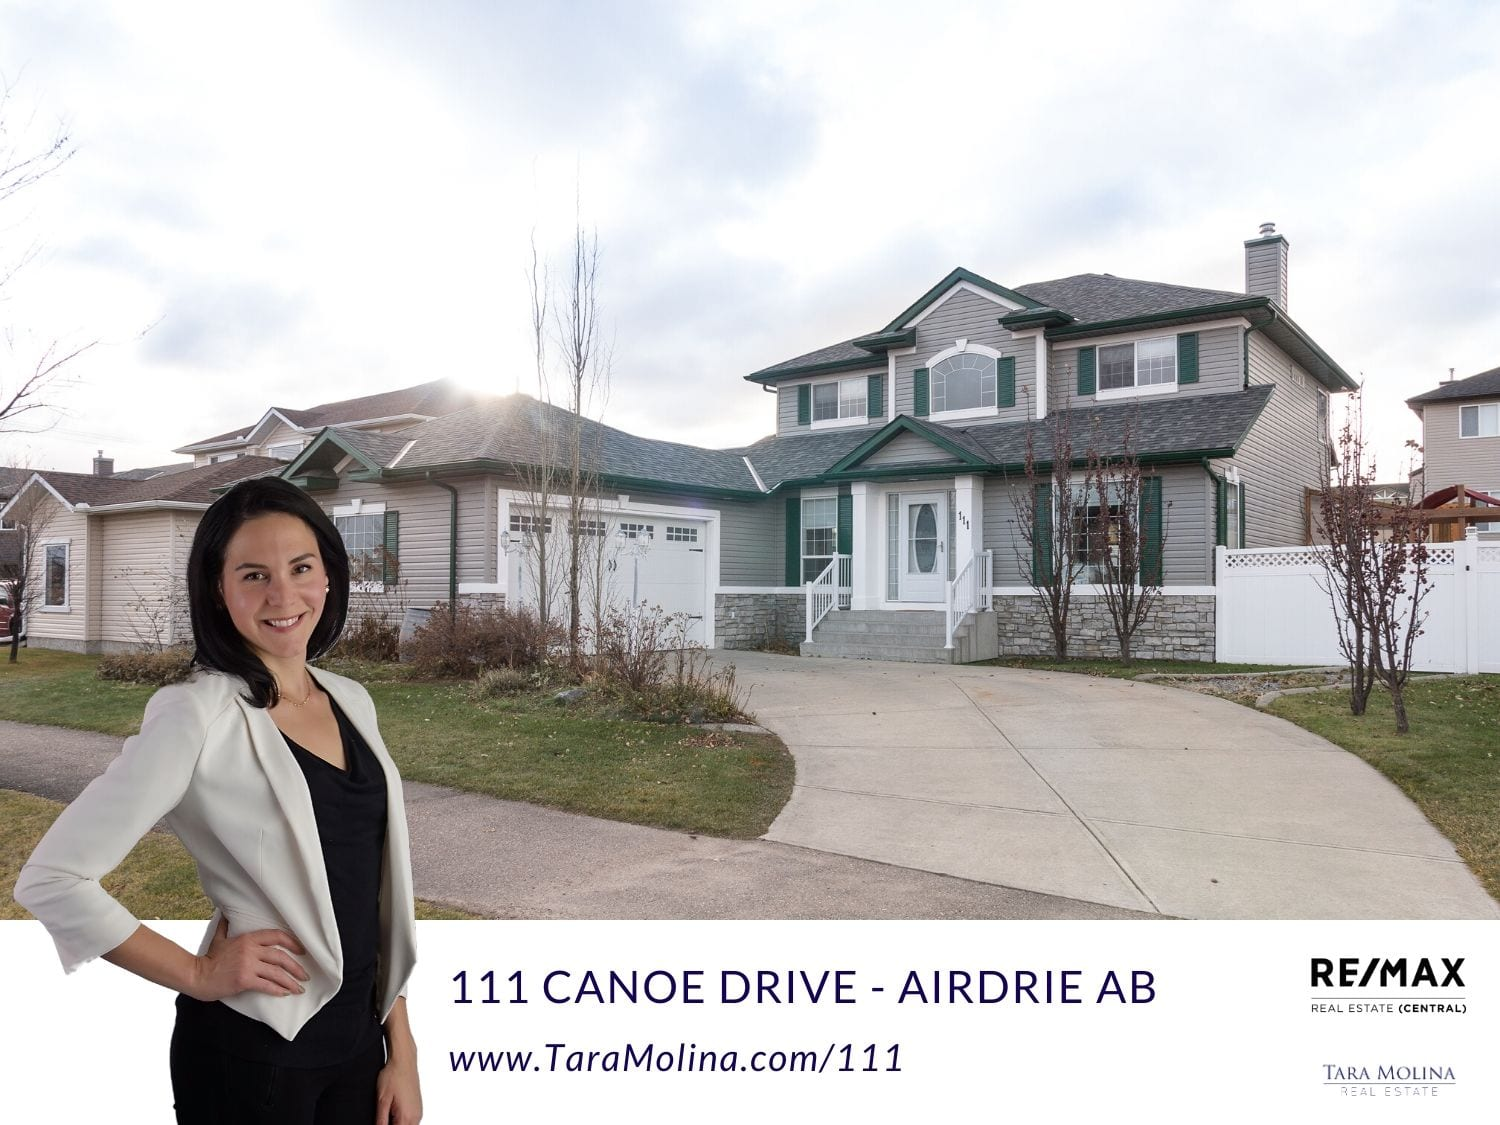 111 Canoe Drive - Airdrie AB - Listing